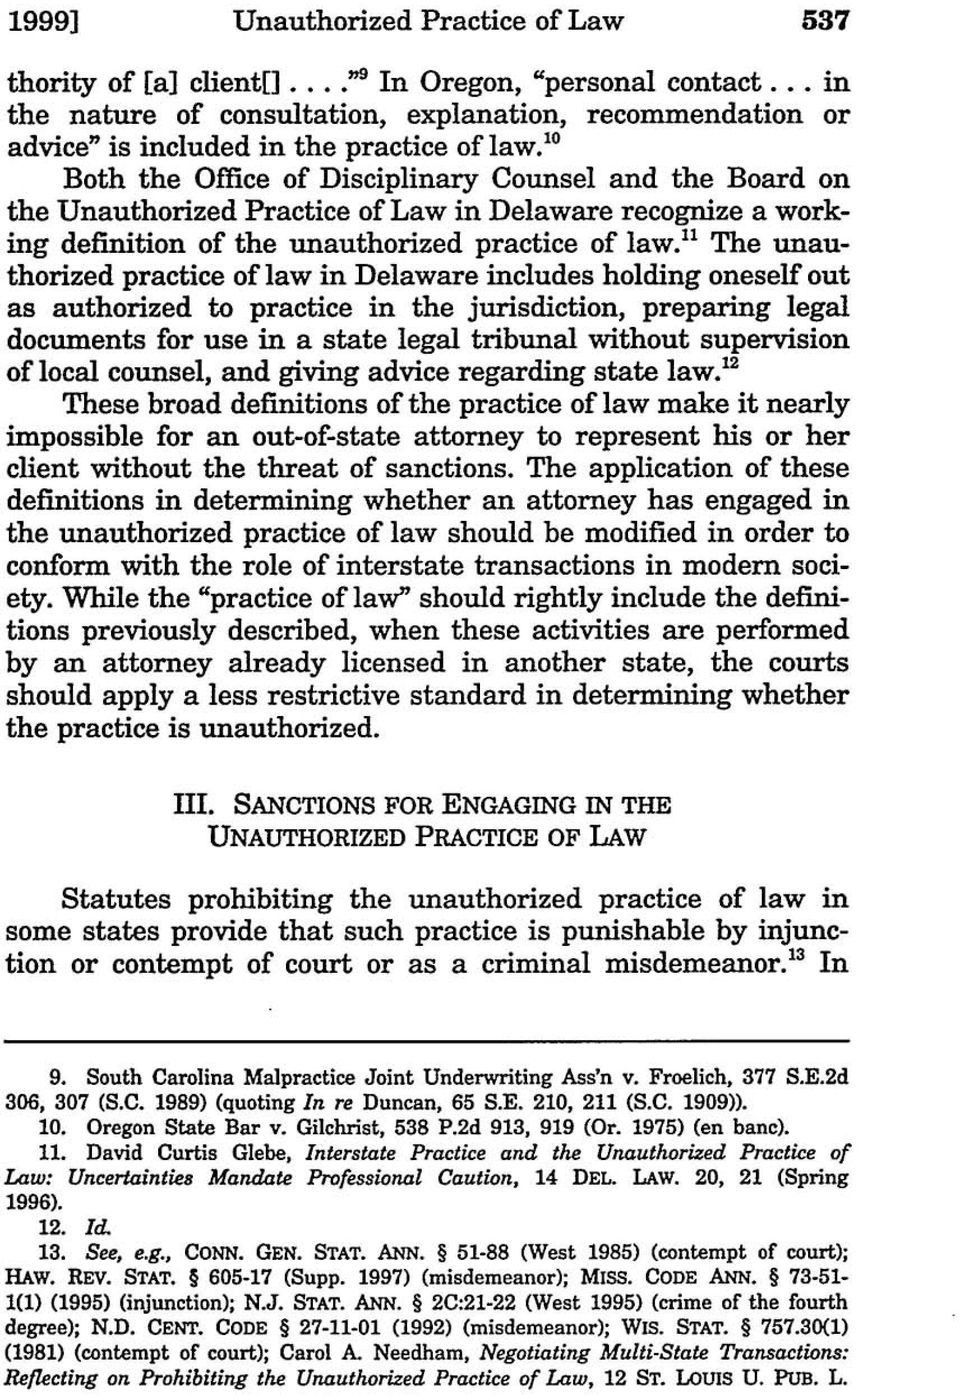 """ Both the Office of Disciplinary Counsel and the Board on the Unauthorized Practice of Law in Delaware recognize a working definition of the unauthorized practice of law."